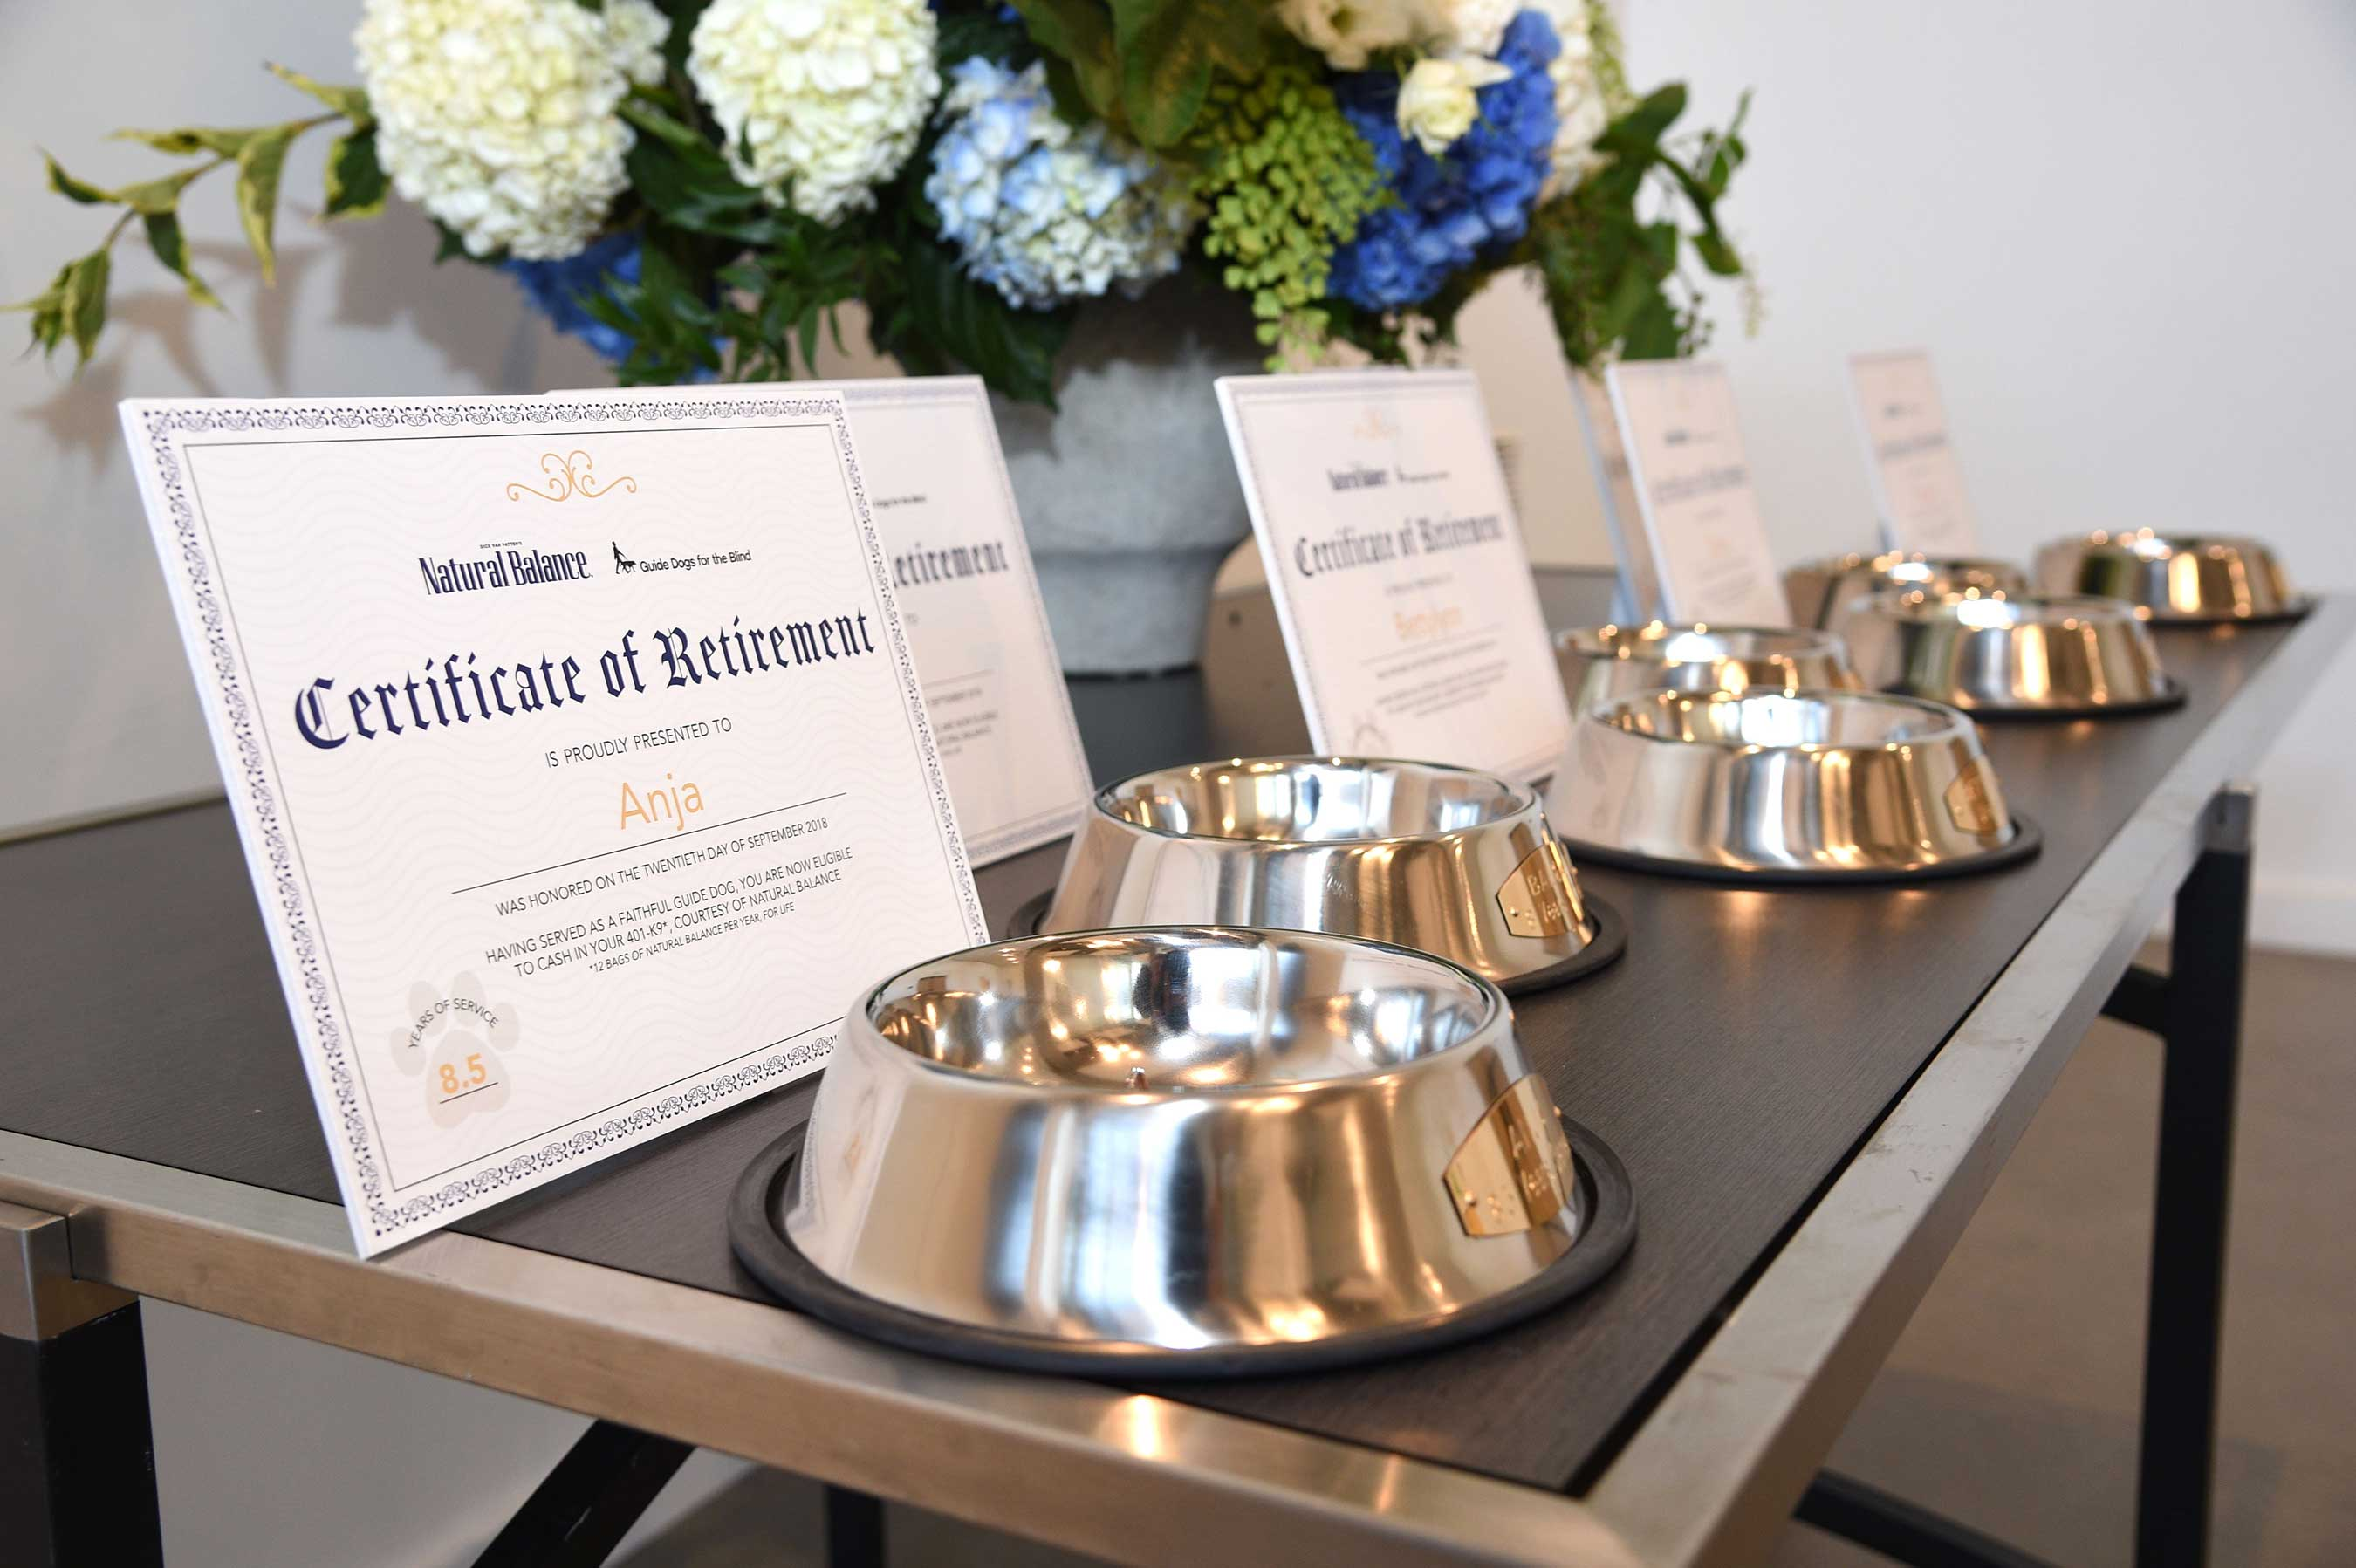 Natural Balance premium pet food brand celebrates the 10-year anniversary of National Guide Dog Month by hosting a Guide Dog Retirement Party at the Kimpton Everly Hotel in Los Angeles.